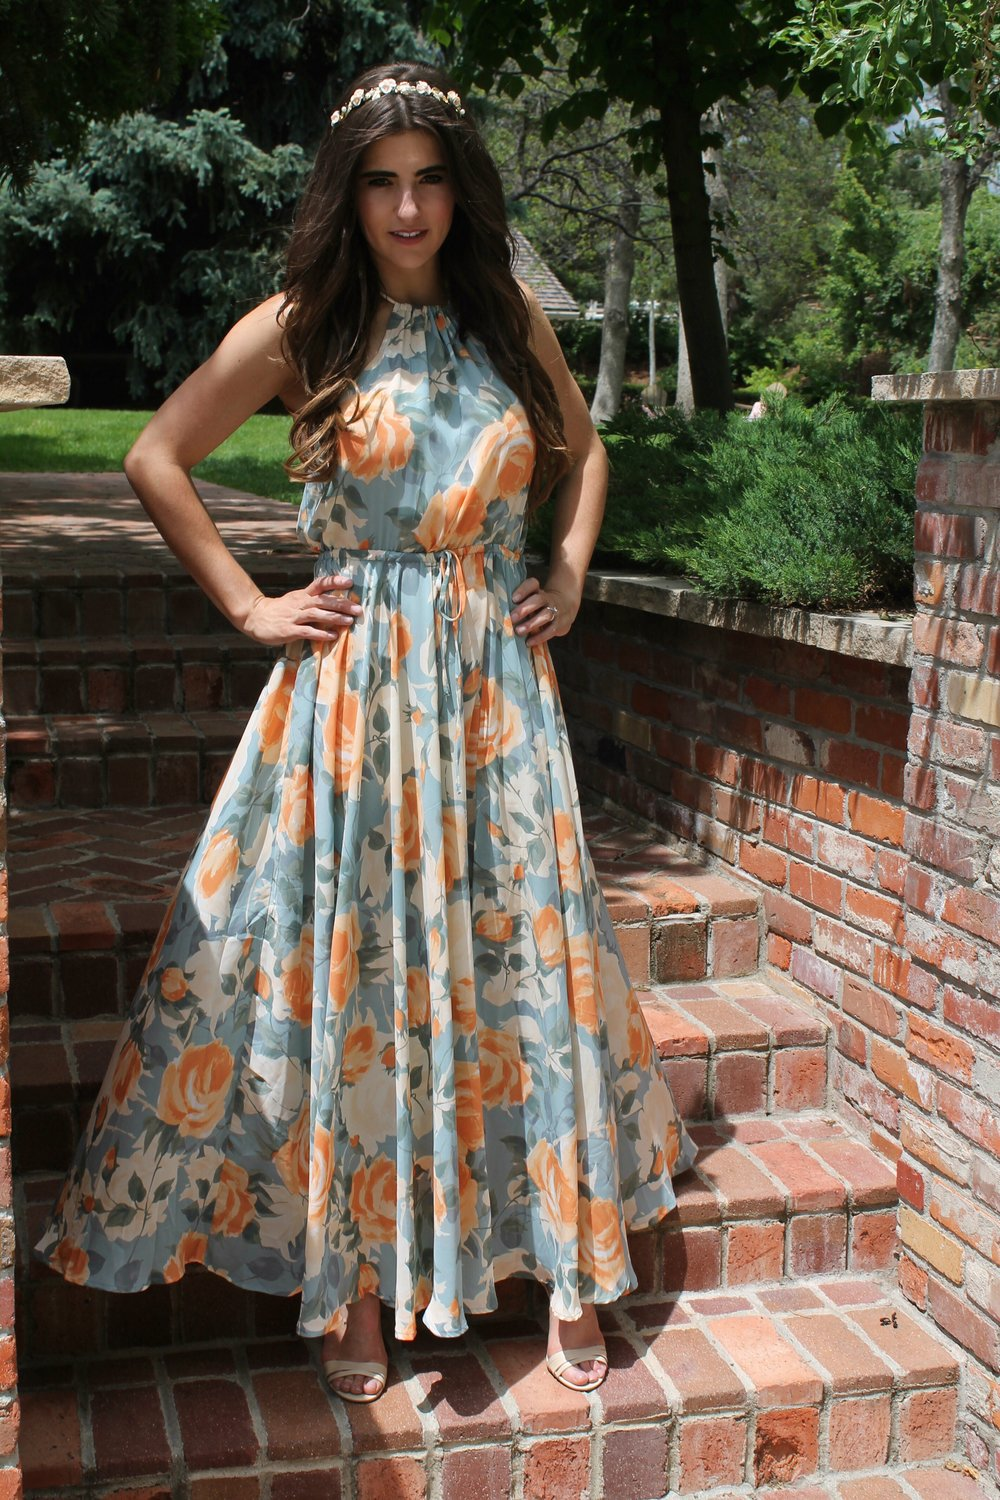 Precious Memories Light Blue & Peach Floral Maxi Dress from Lulu's